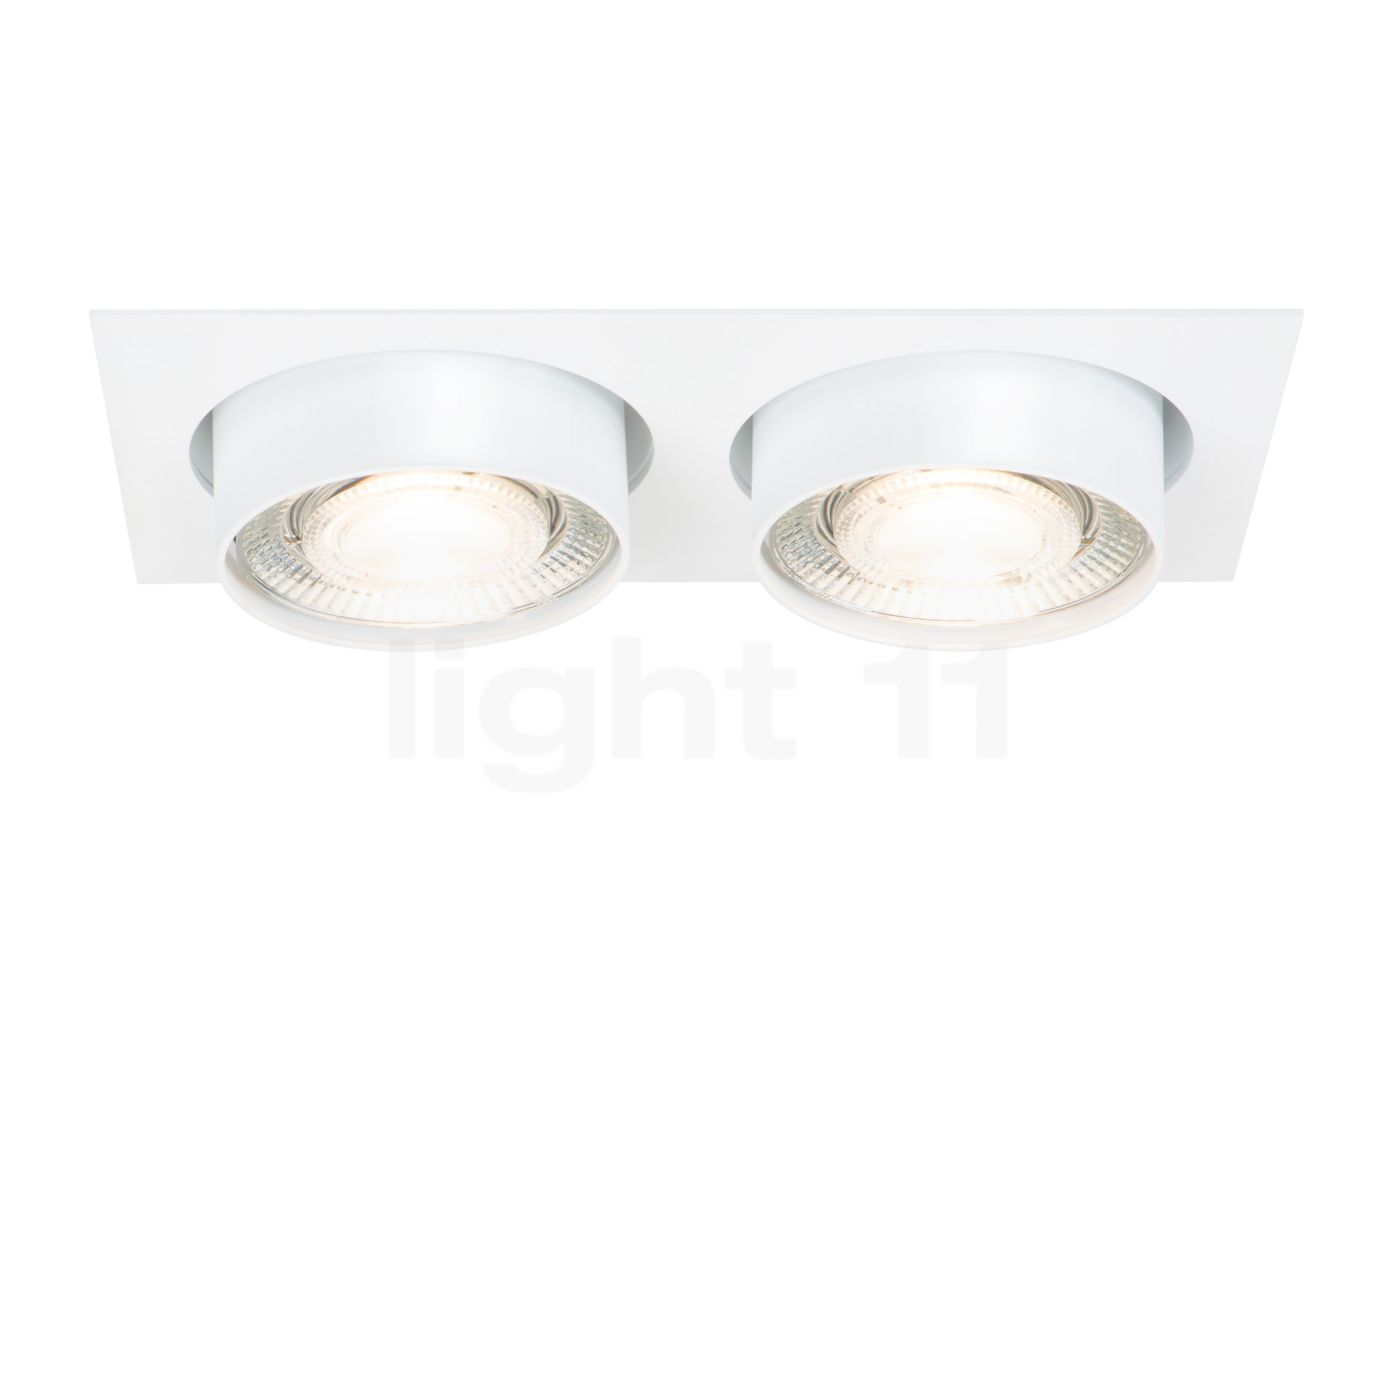 by from lights architonic product en led ledson b light ceiling rsl recessed